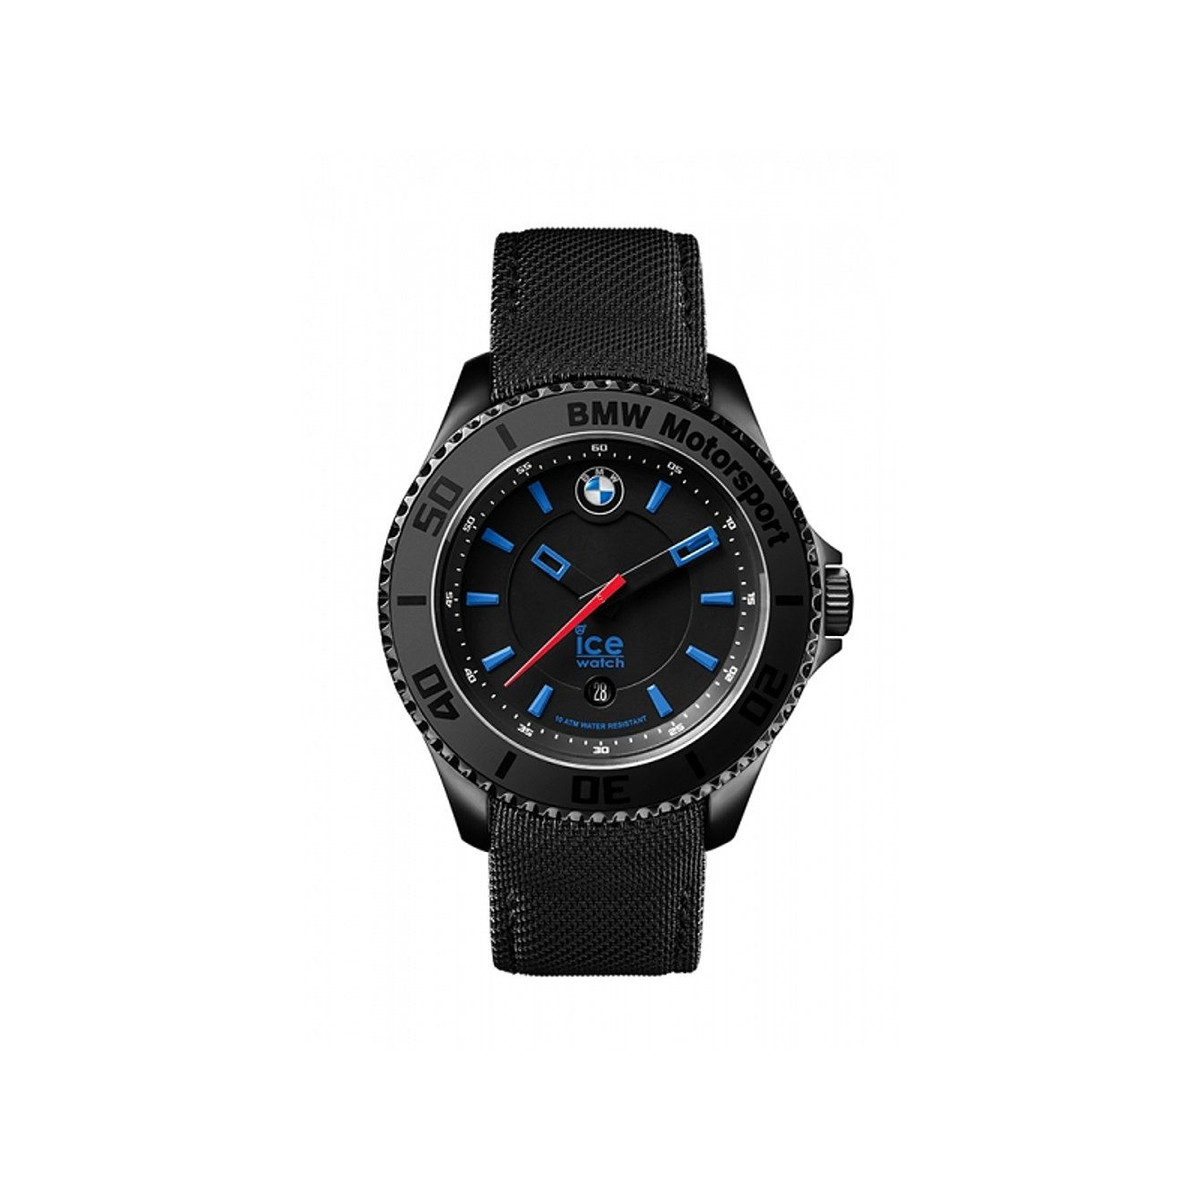 Montre Ice Watch BMW Homme noir cuir